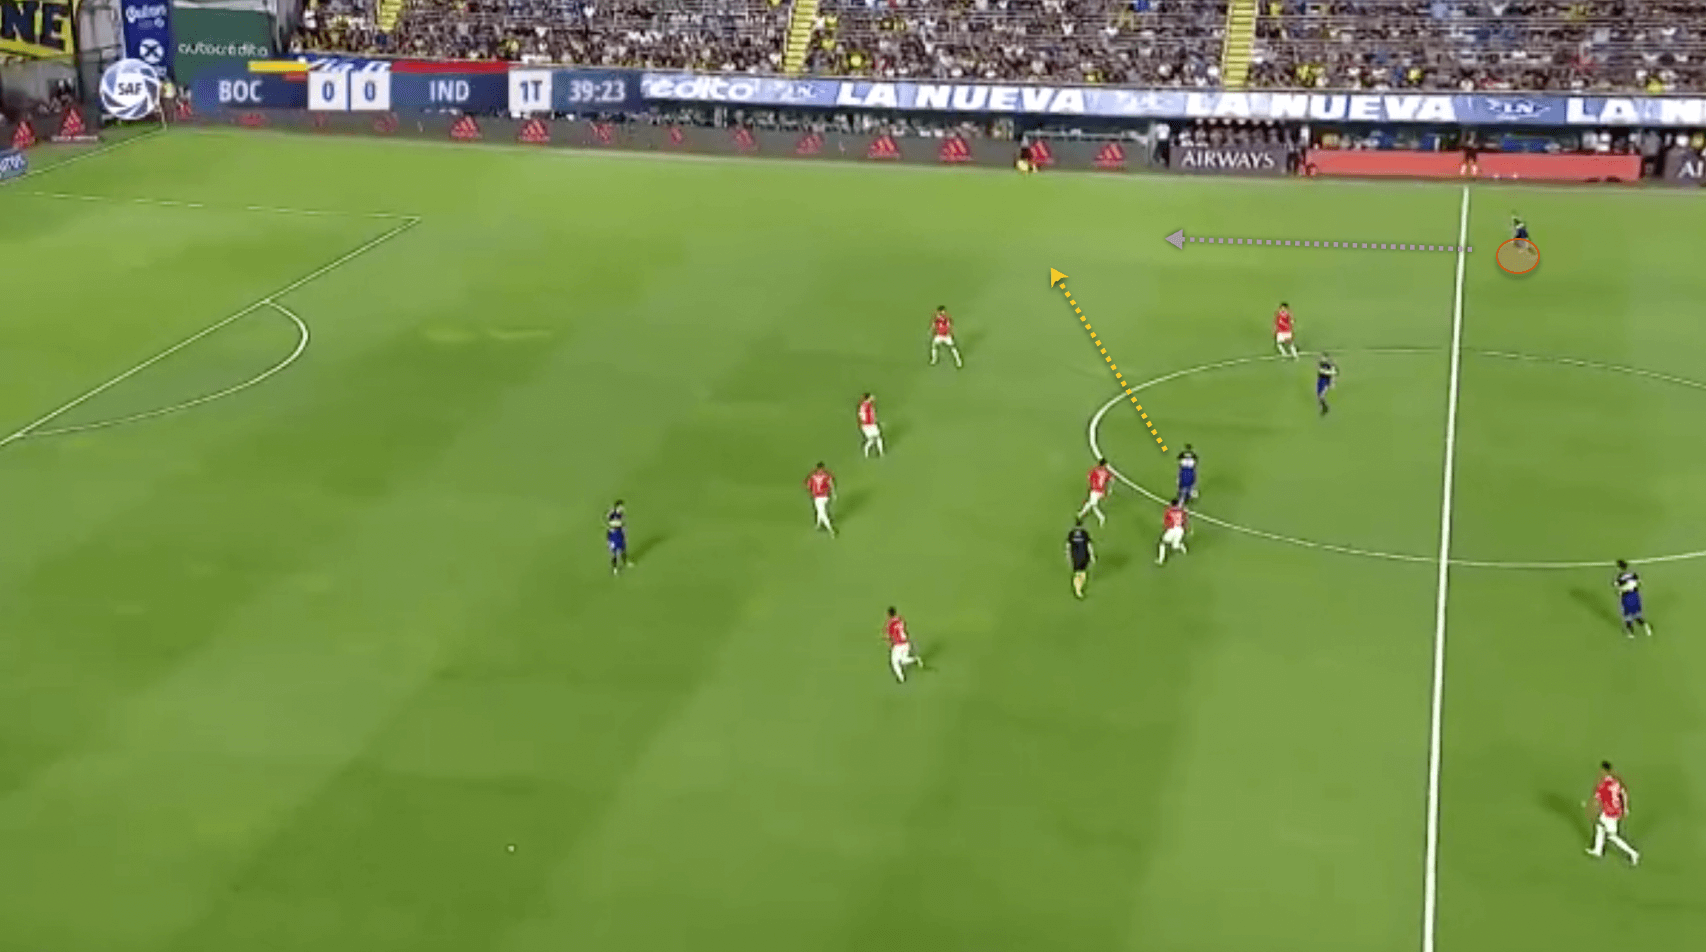 Superliga 2019/20: Boca Juniors vs Independiente - tactical analysis tactics